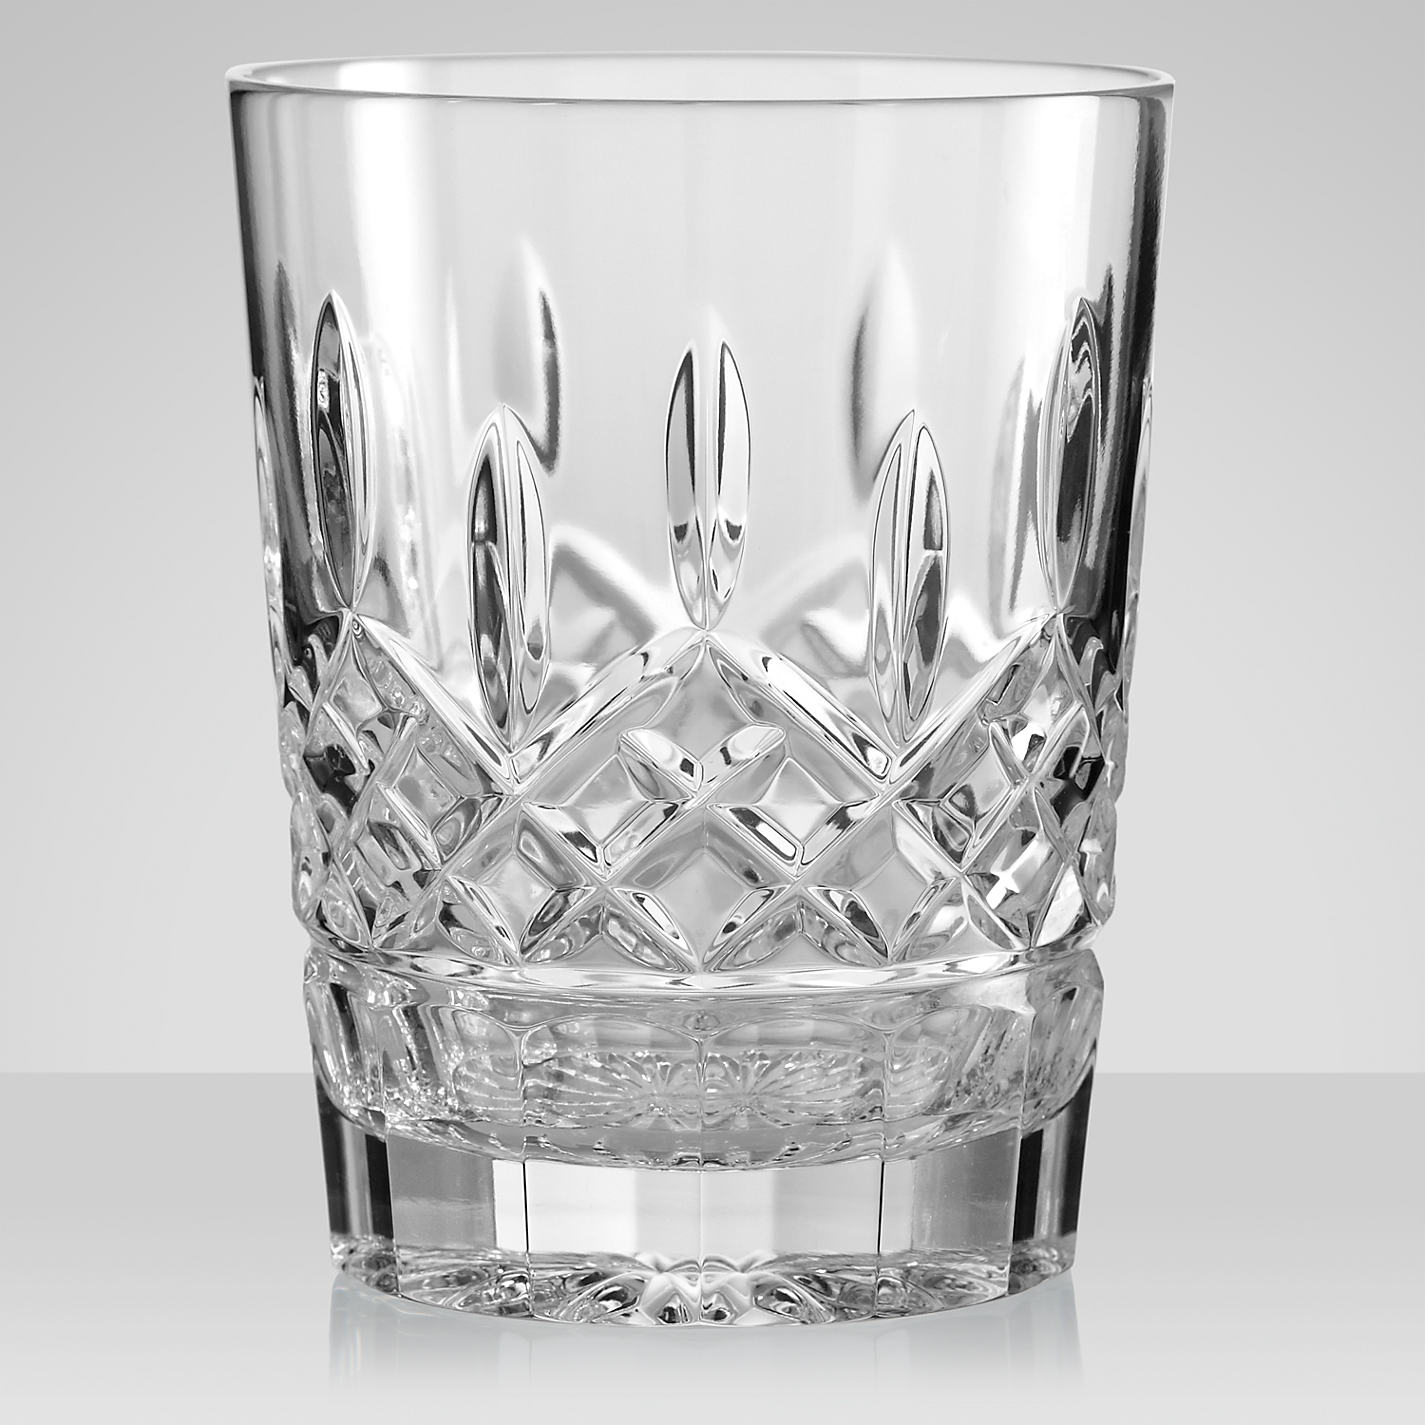 Chic waterford lismore with lismore goblet design glass waterford lismore